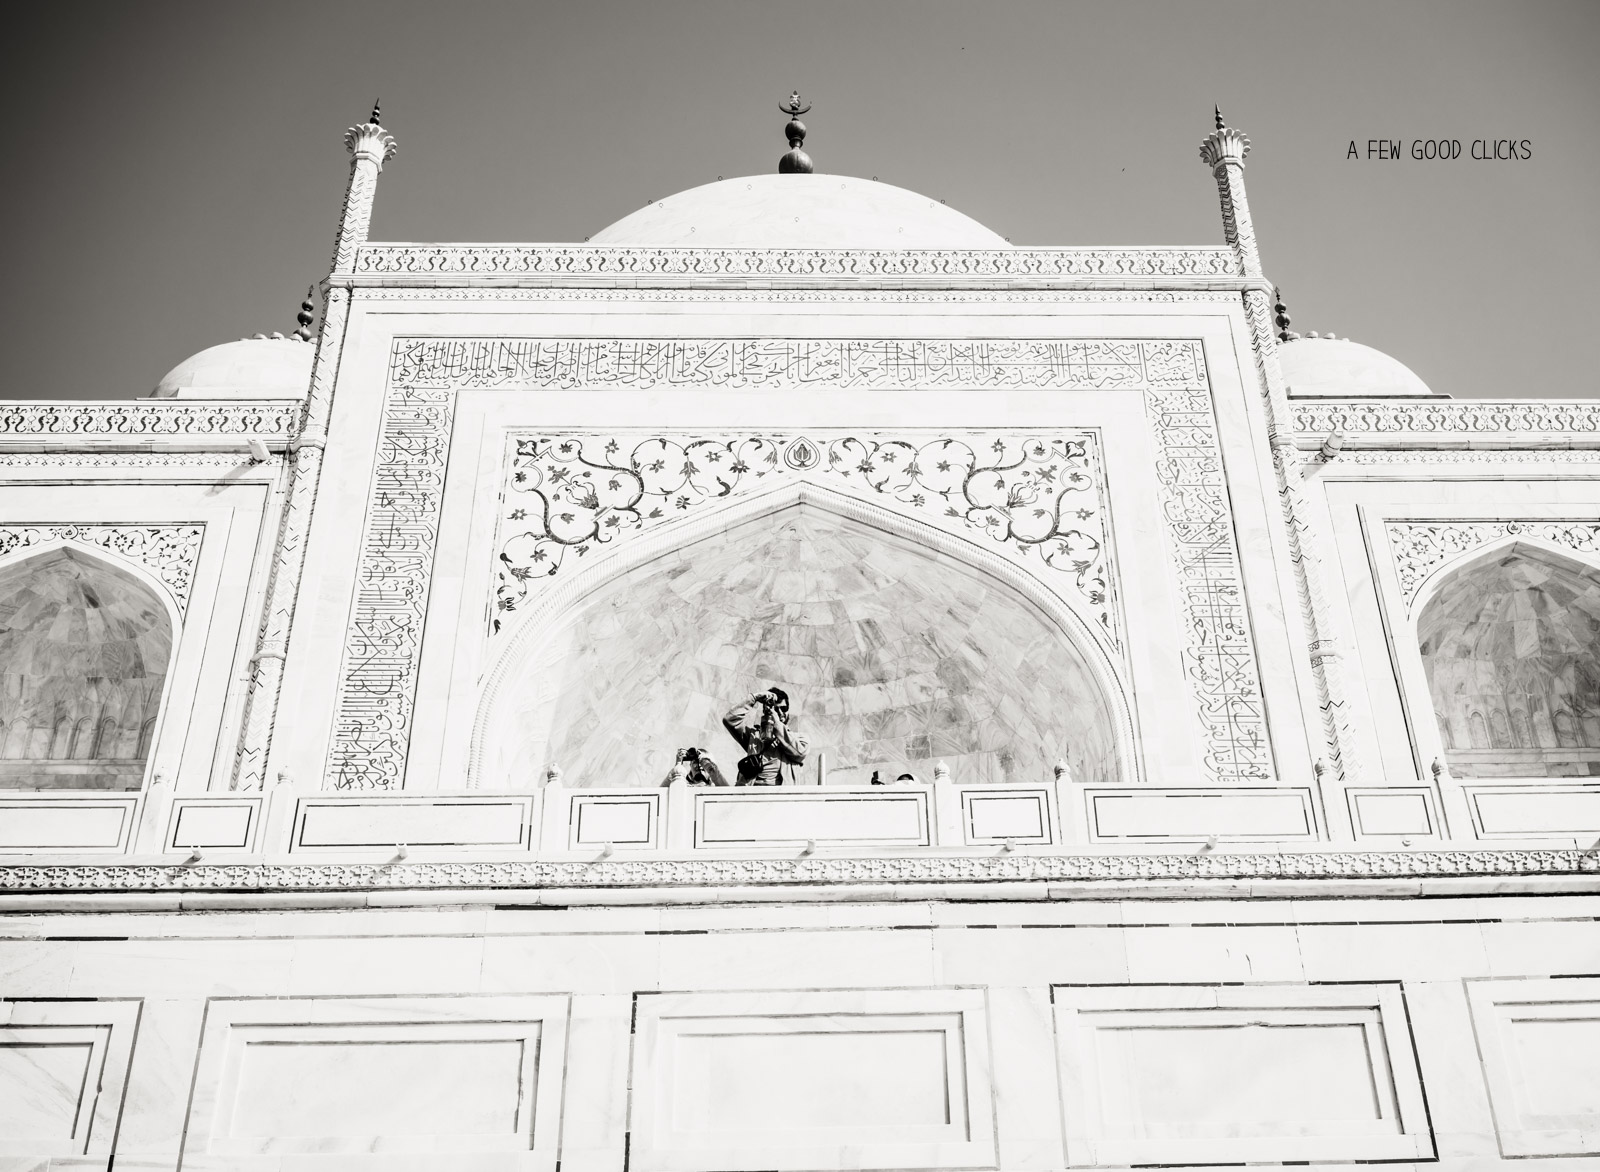 Tourist taking my photo and I took his photo.. I am optimistic that I will find this chap one day so that I can thank him for adding character to image and of course offer this momentous photograph shot in front of Taj Mahal.